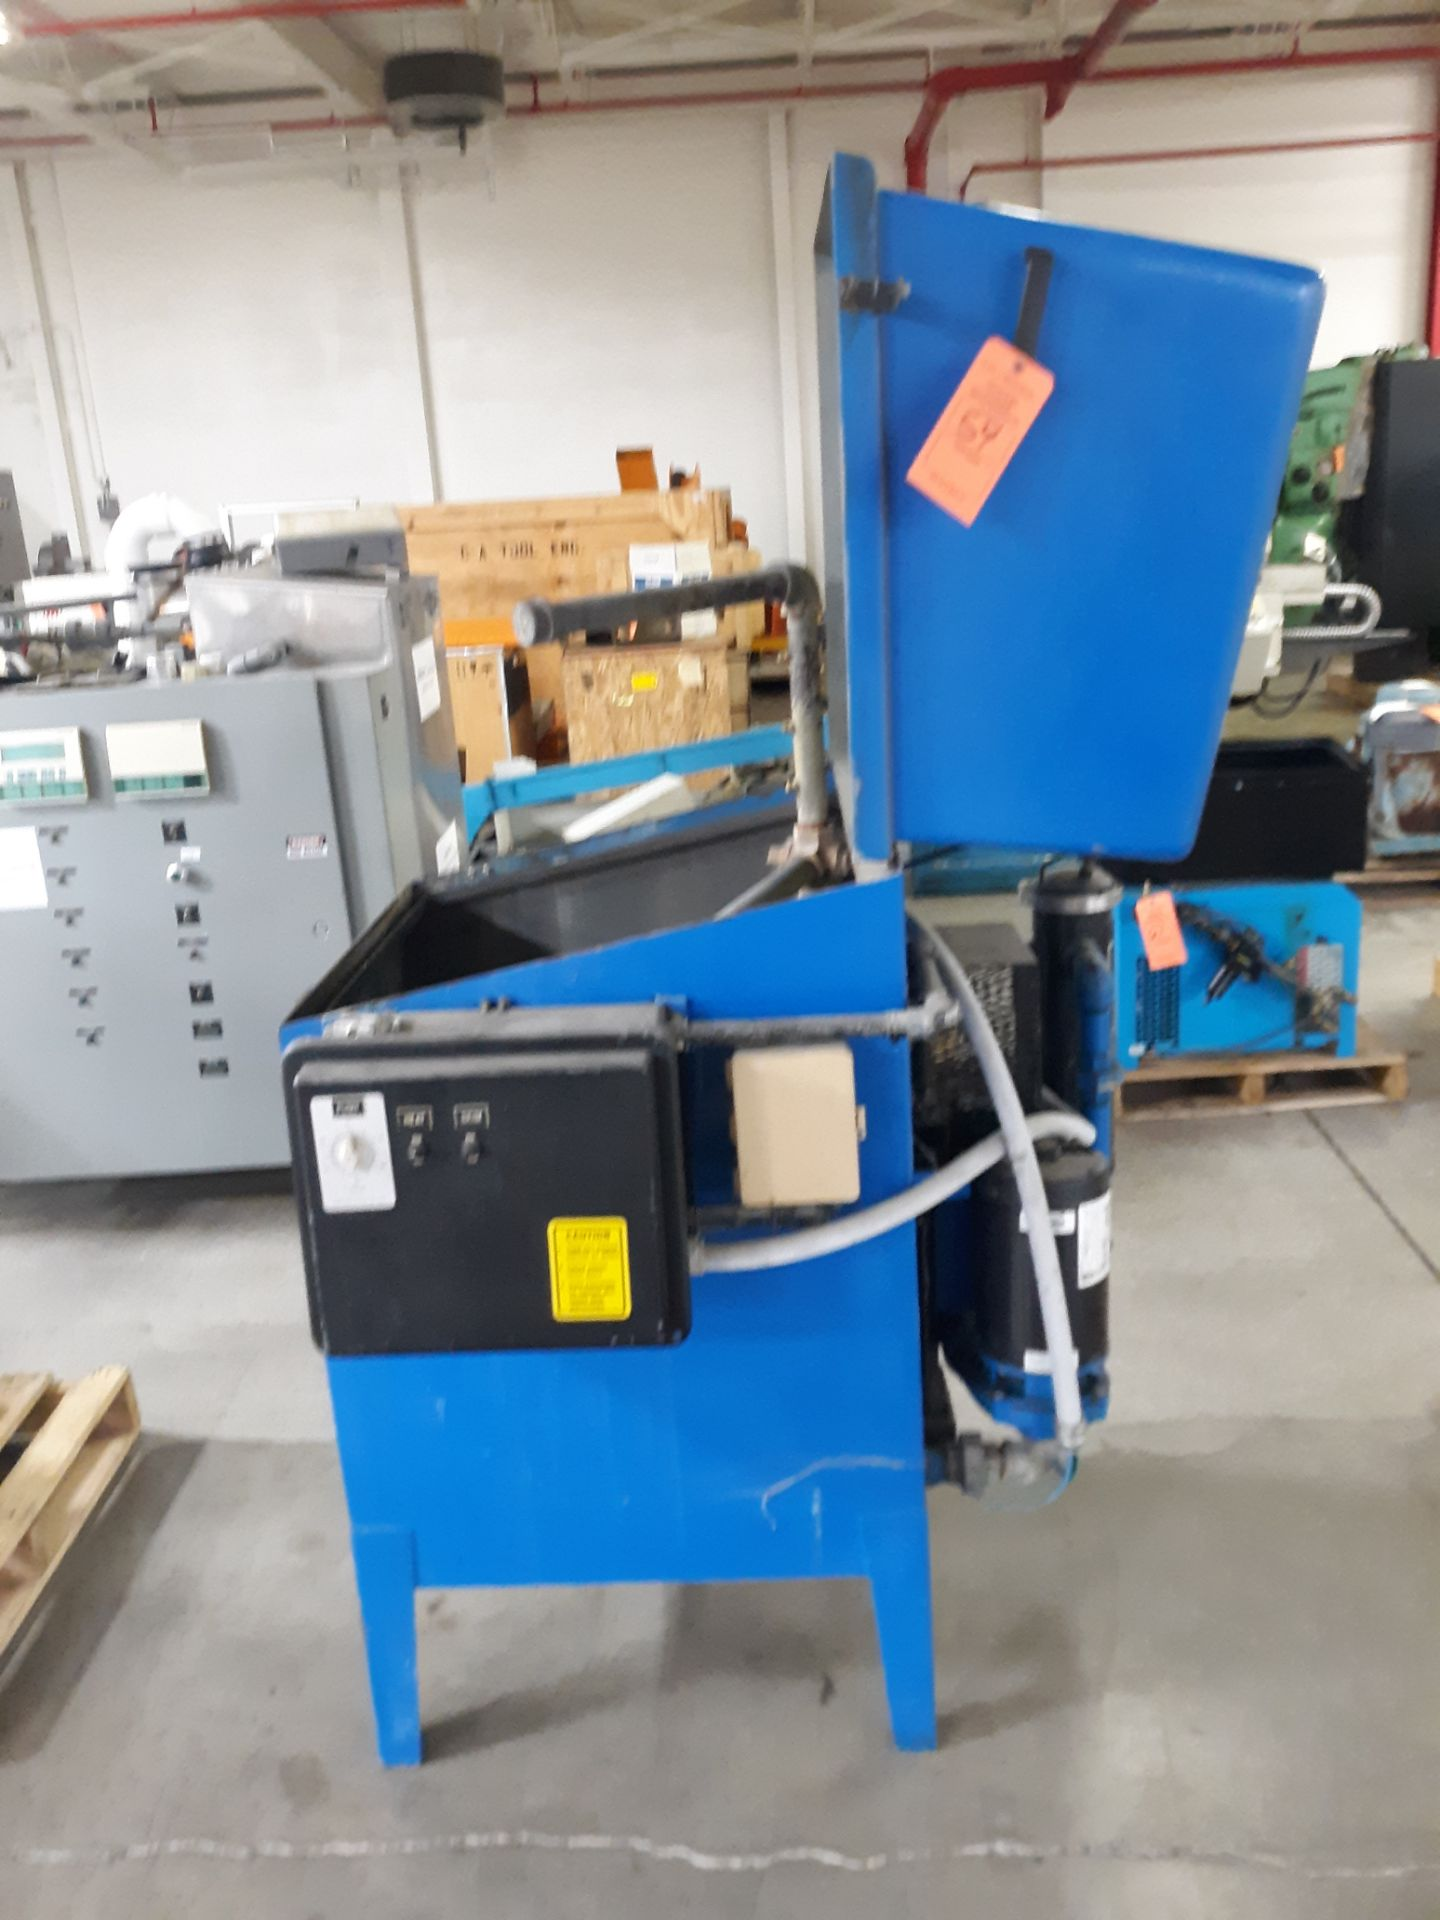 Lot 54 - PARTS WASHER (LOCATED AT: 570 S. MAIN STREET, CHURUBUSCO, IN 46723) RIGGING FEE: $10